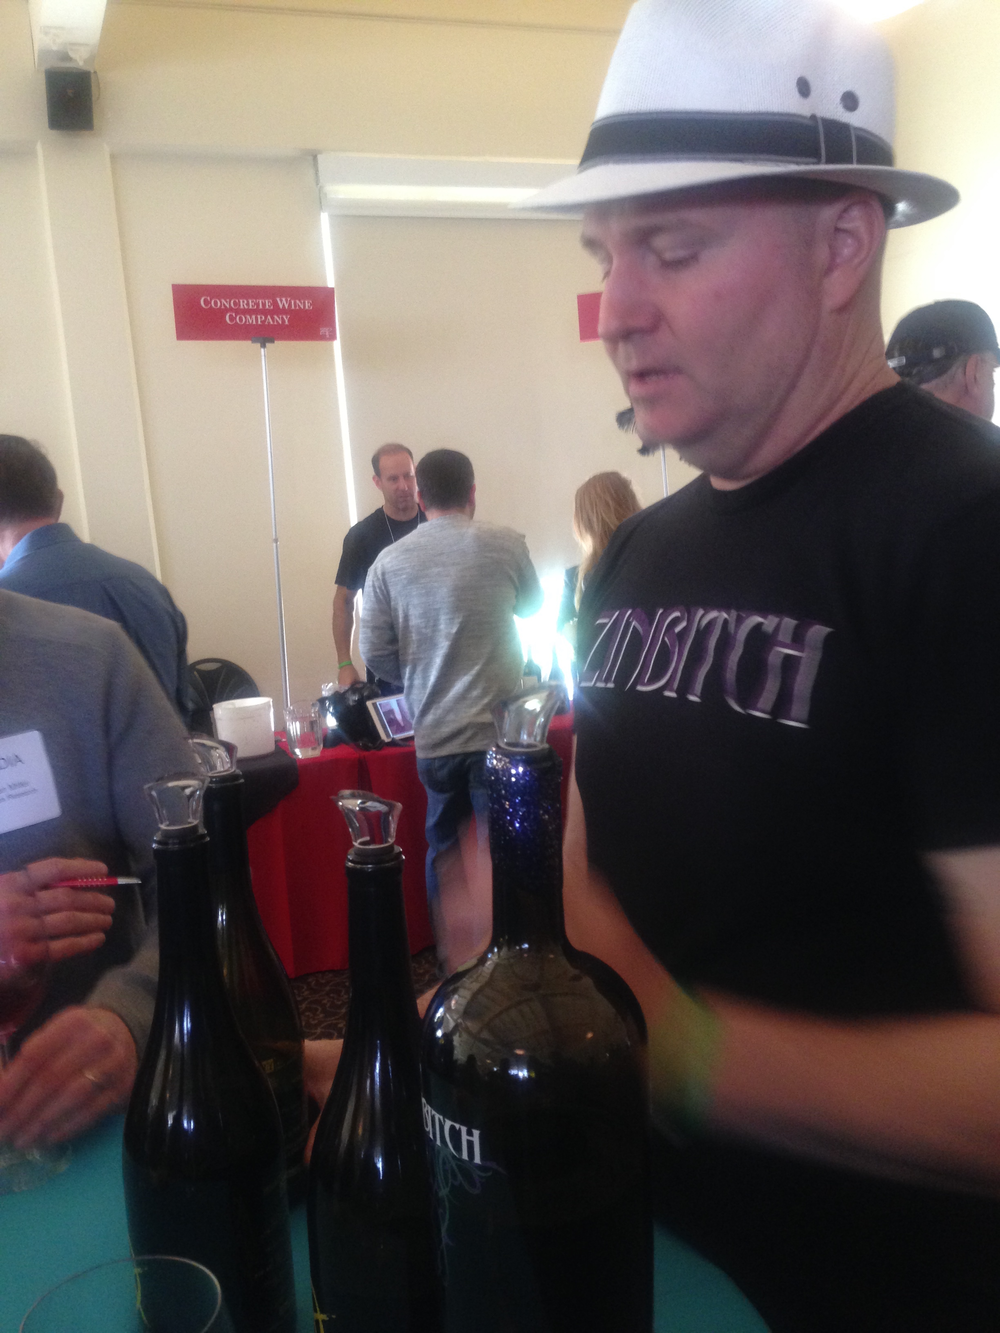 Christian Tetje, Owner & Winemaker at Cypher Wines